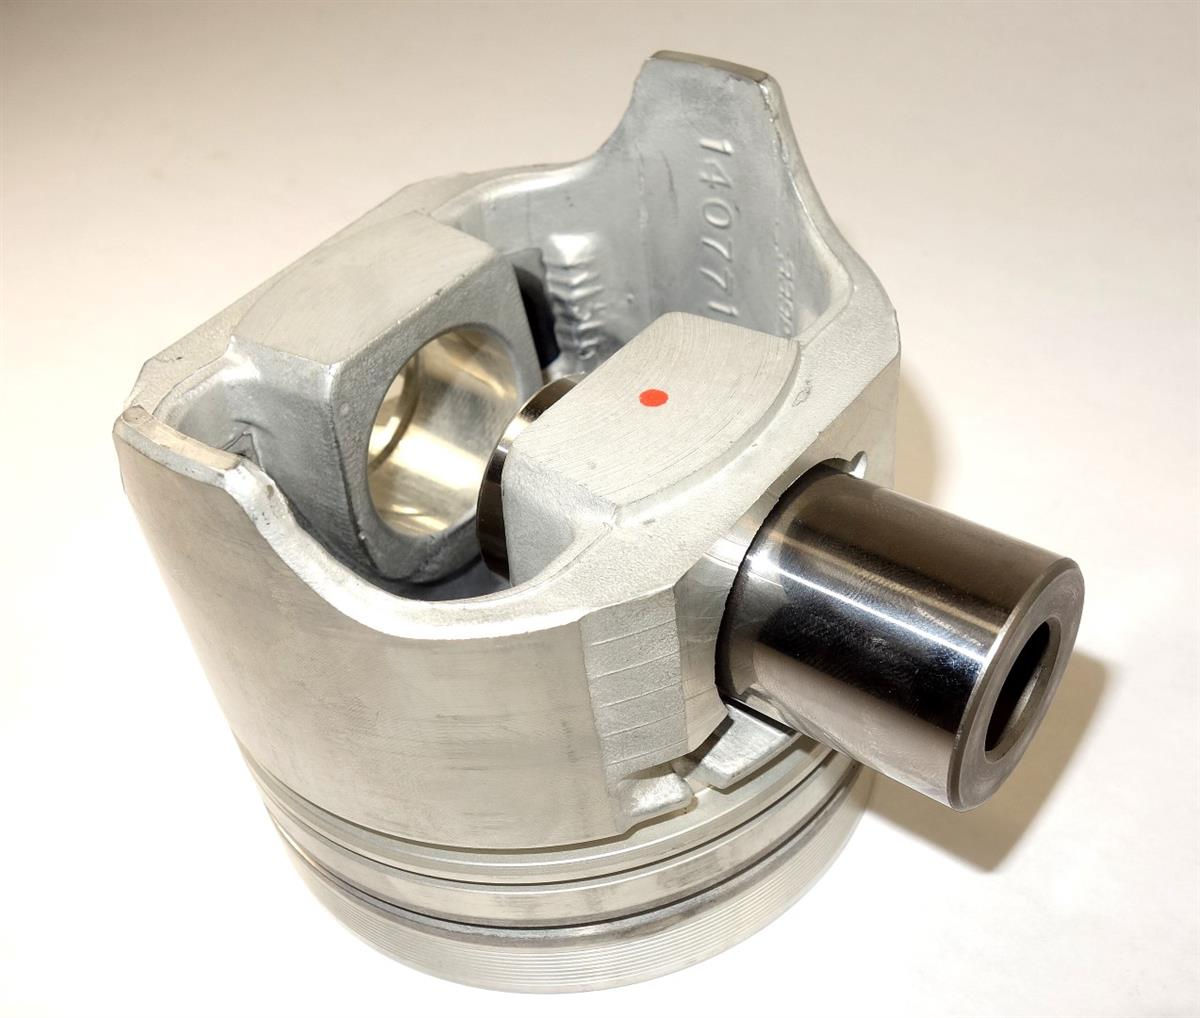 HM-919 | GM 6.2 Liter Engine Piston and Wrist Pin Assembly